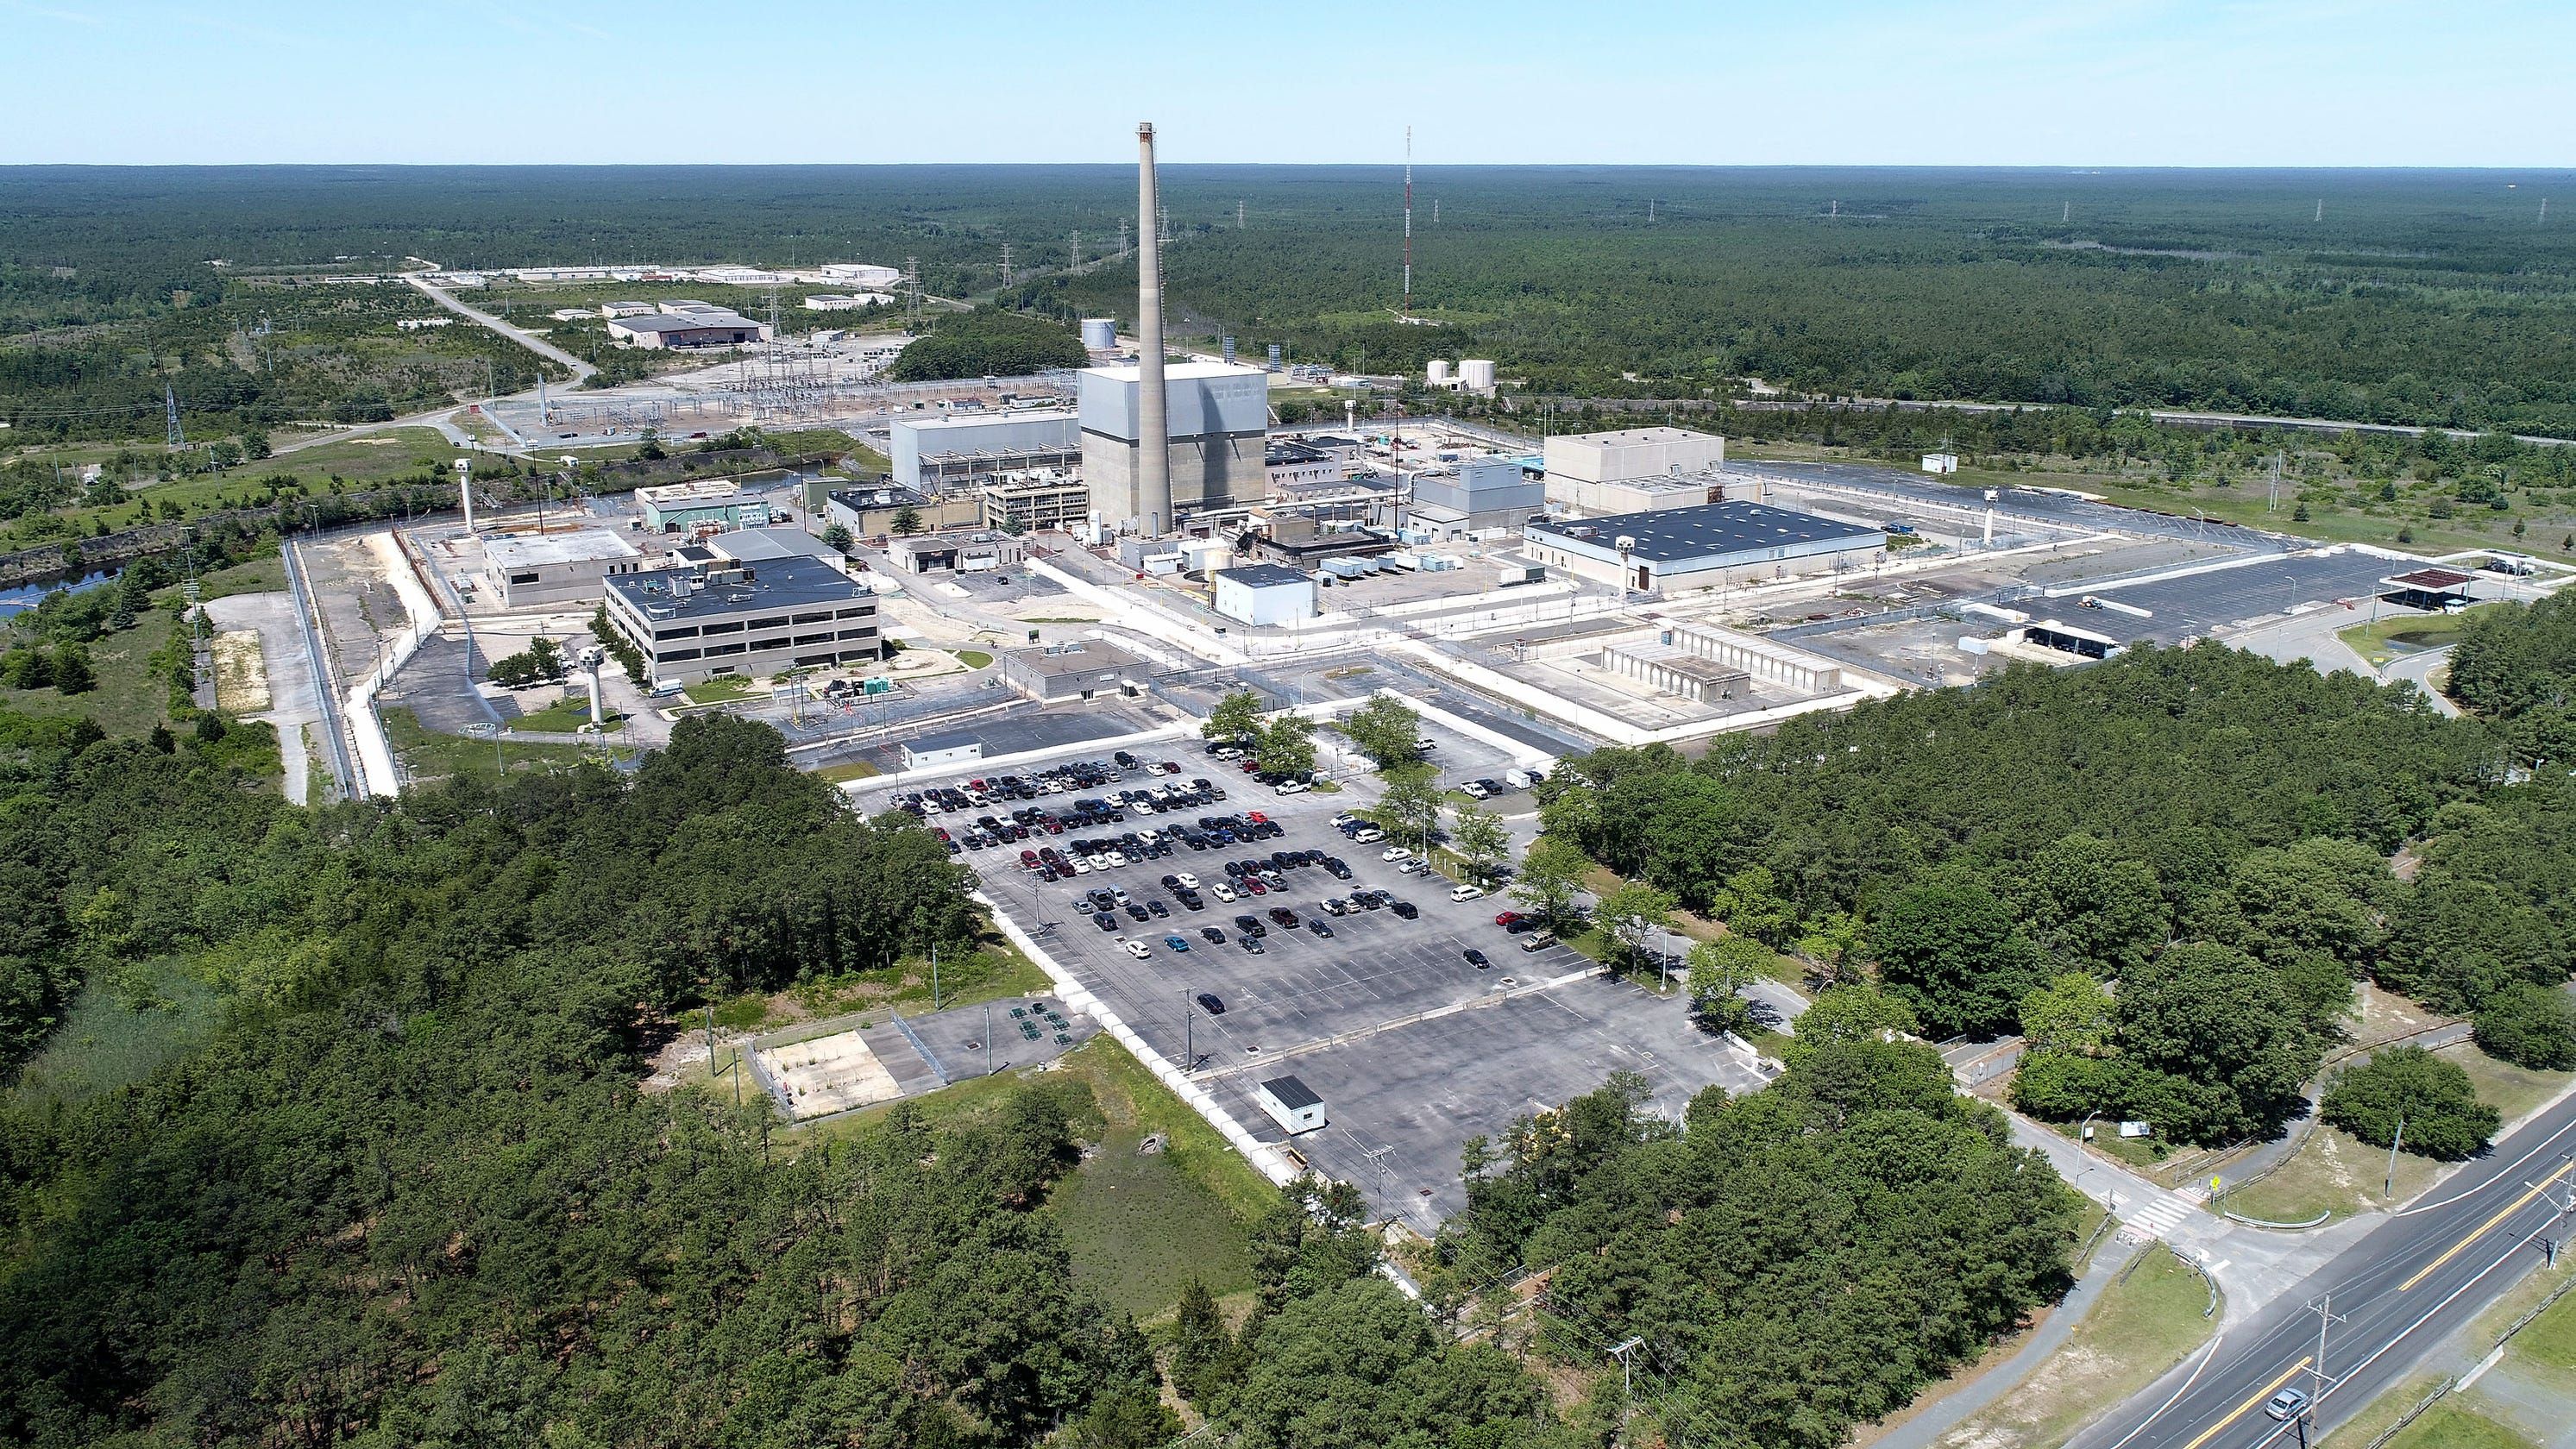 Nuclear power: As Oyster Creek closes in NJ, decommissioning speeds up